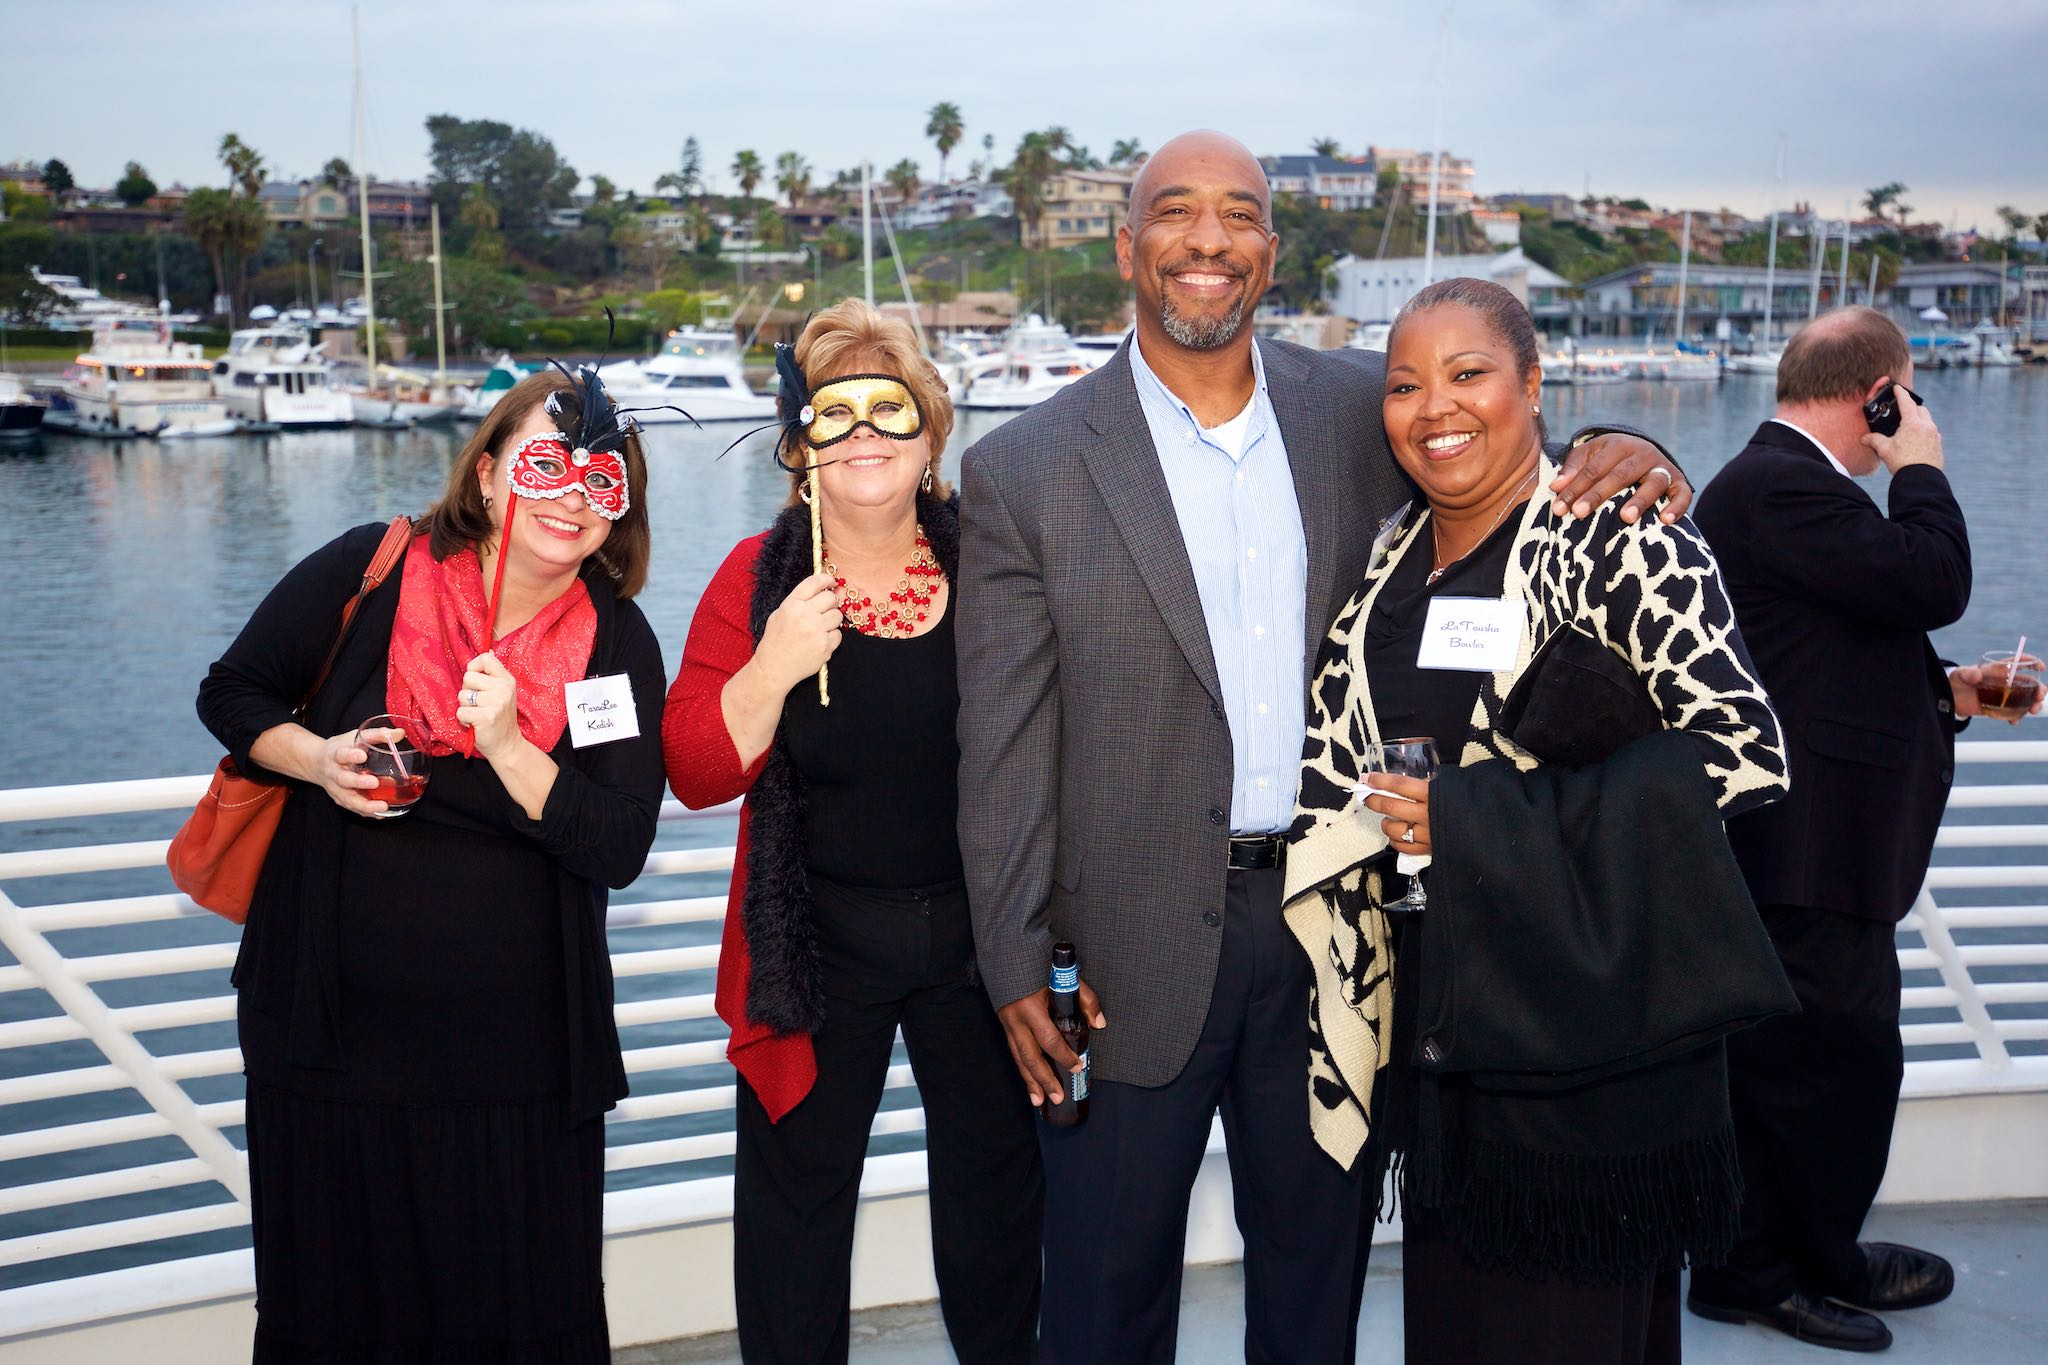 Executive Retreats Brunch Cruises event